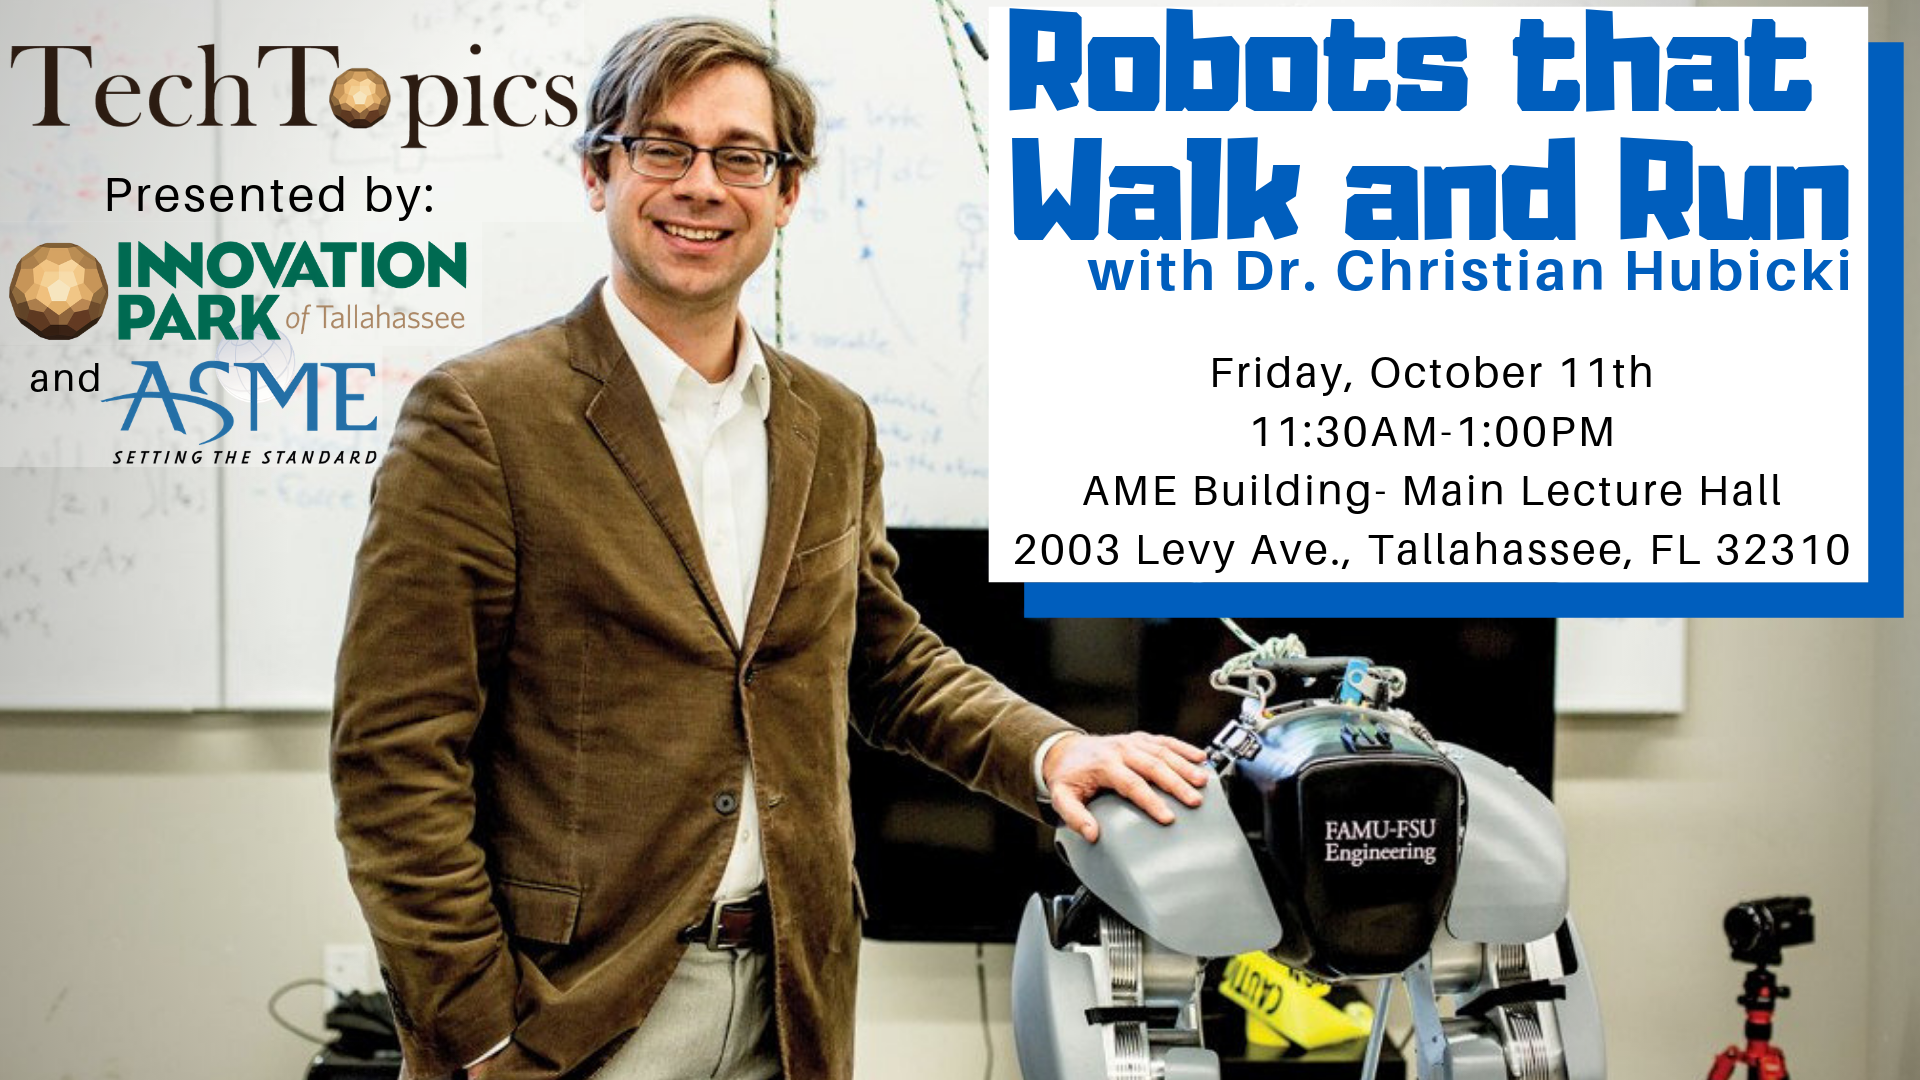 TechTopics featuring Hubicki and robots